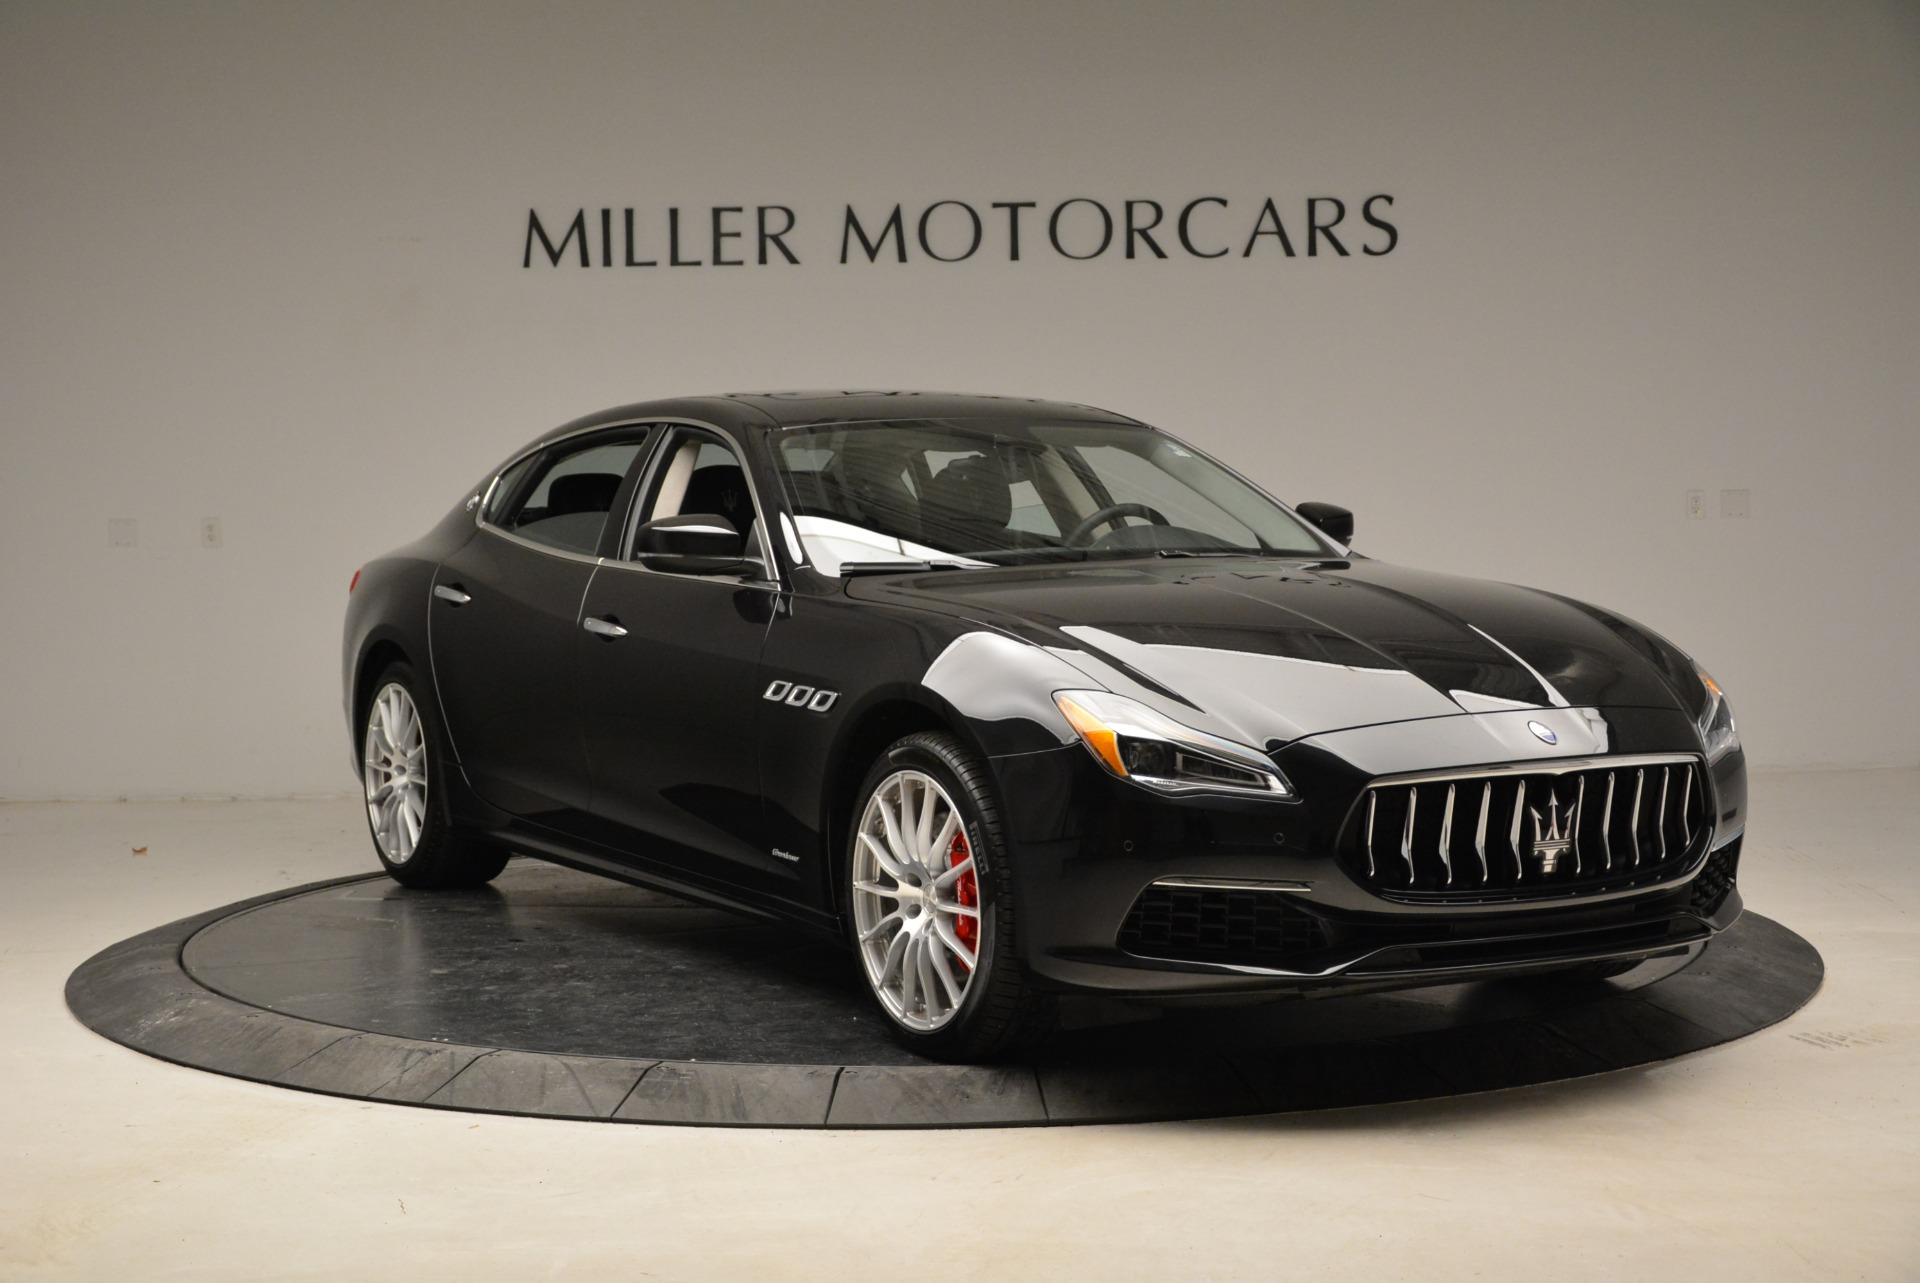 New 2018 Maserati Quattroporte S Q4 GranLusso For Sale In Westport, CT 2386_p11